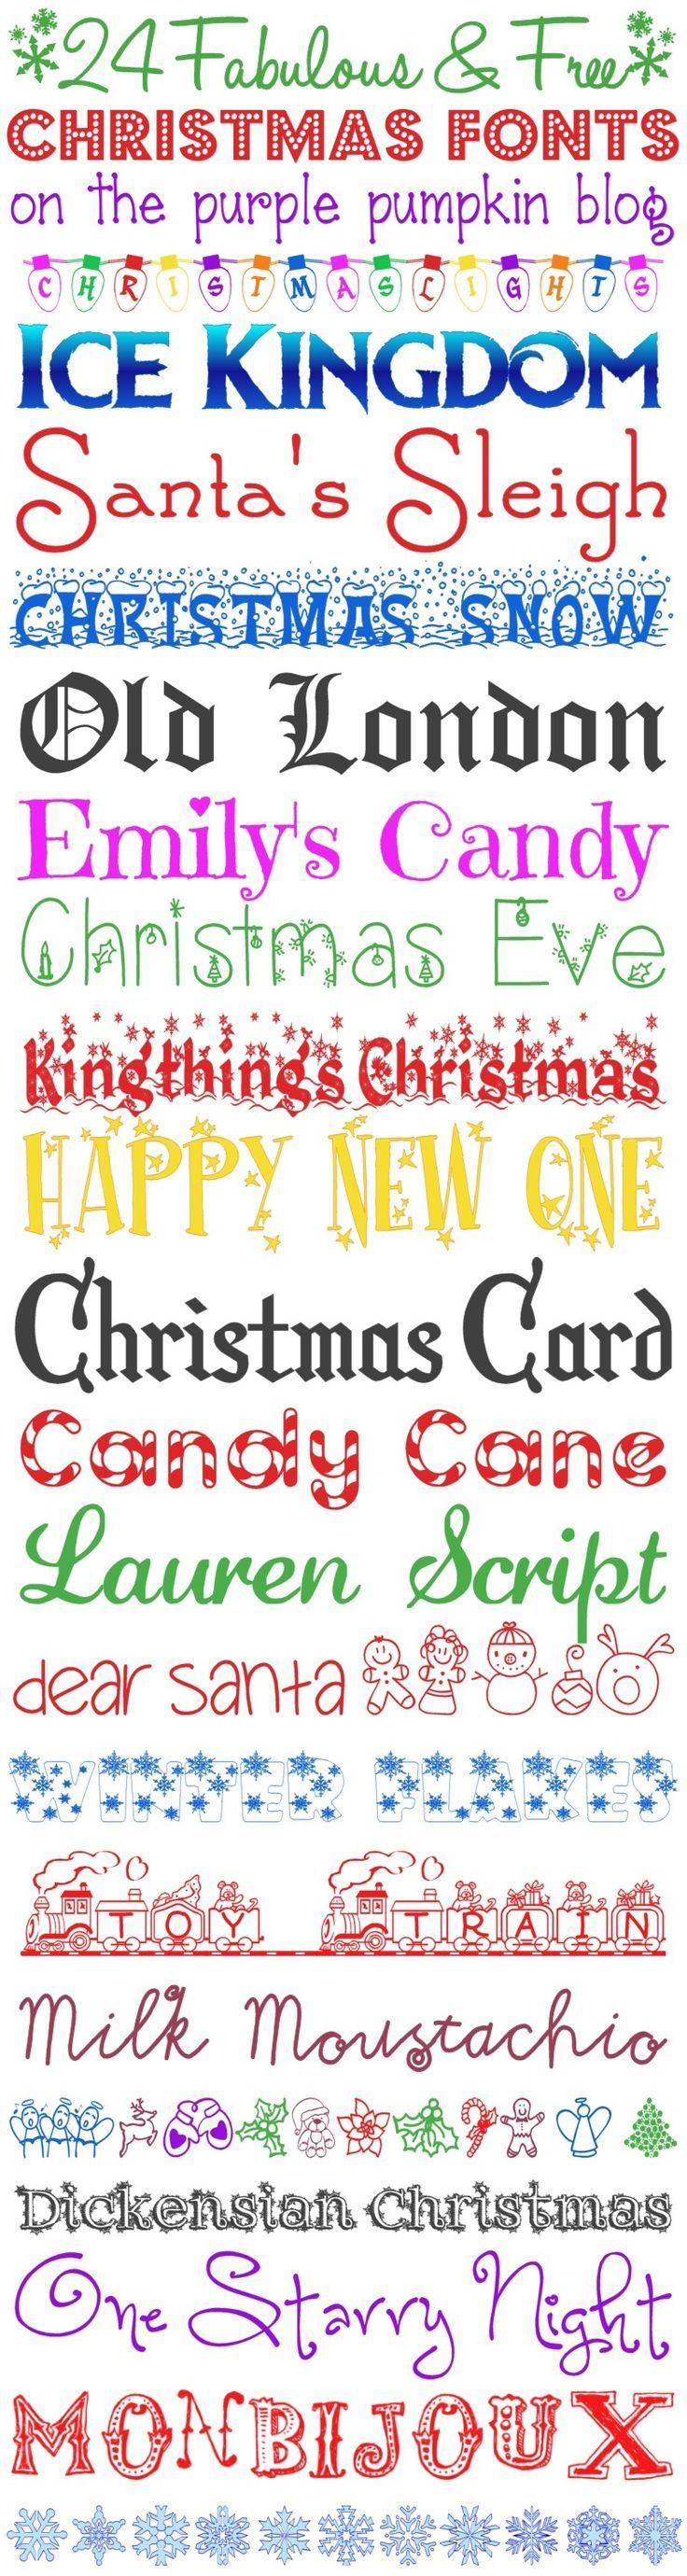 medium resolution of 24 fabulous and free christmas fonts for all your christmas and festive projects